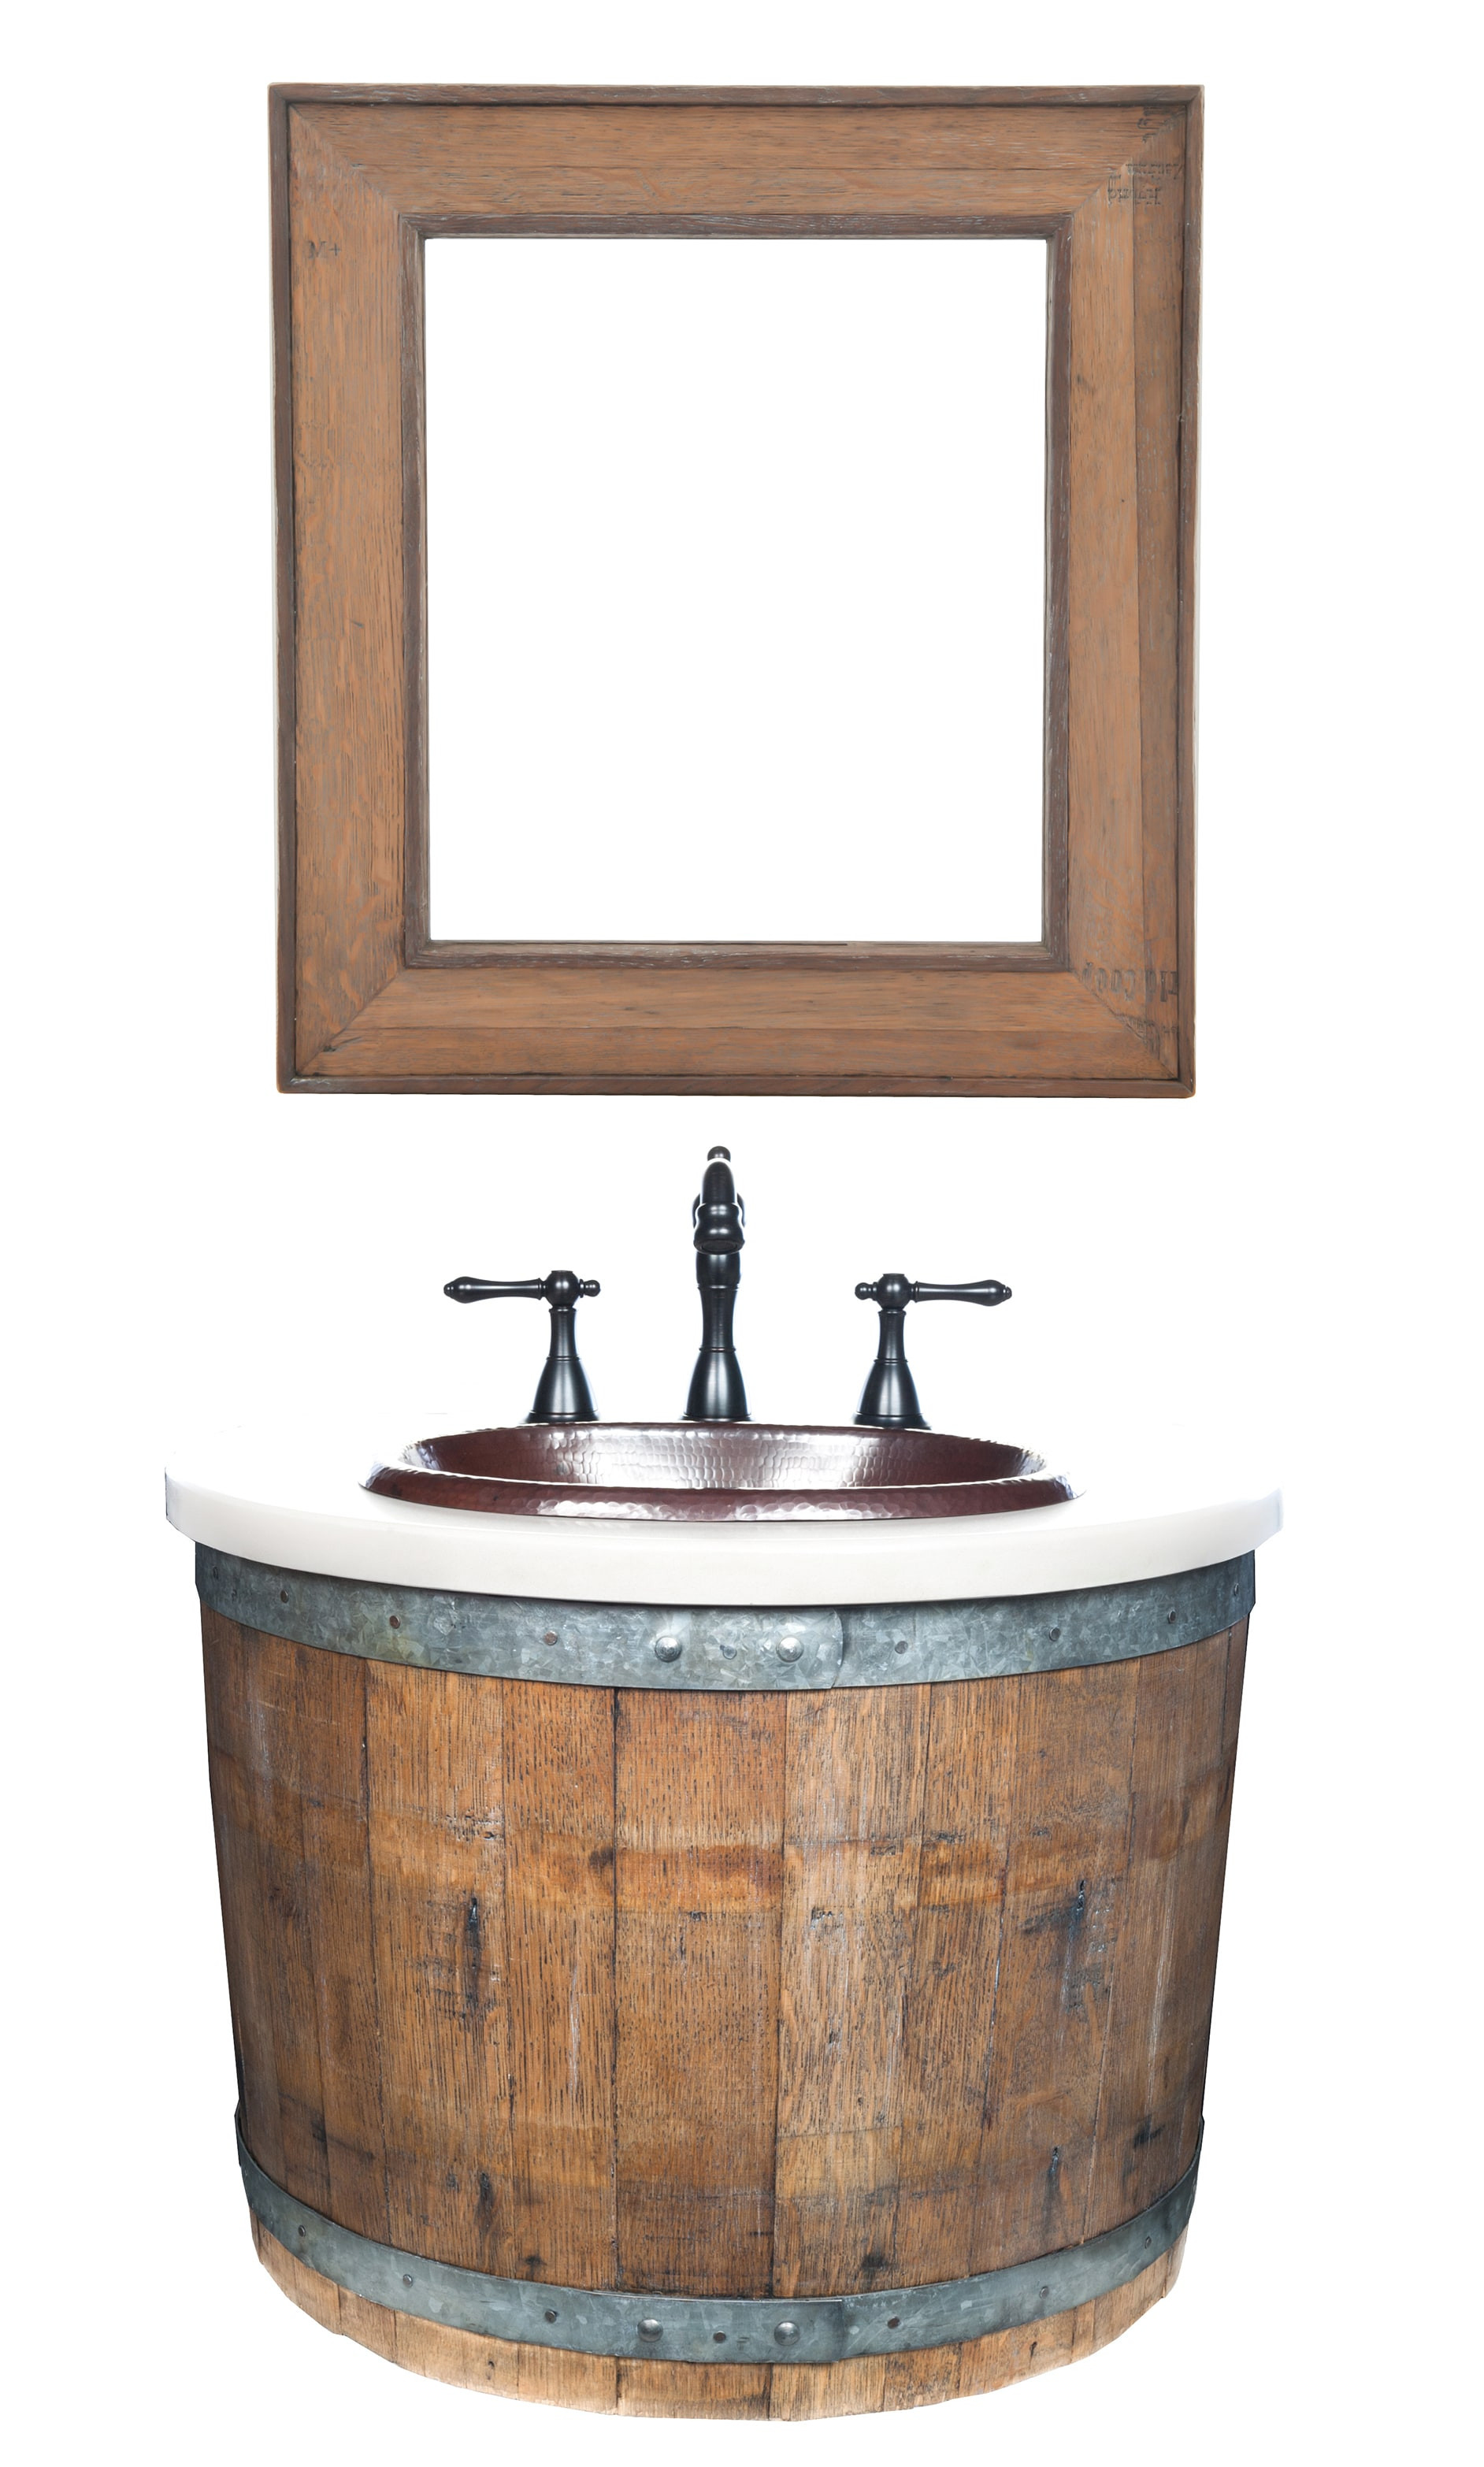 15 Spectacular Diy Hardwood Floor 2021 free download diy hardwood floor of foxy reclaimed wood bathroom mirror and diy wood framed mirror the regarding foxy reclaimed wood bathroom mirror and diy wood framed mirror the wood grain cottage